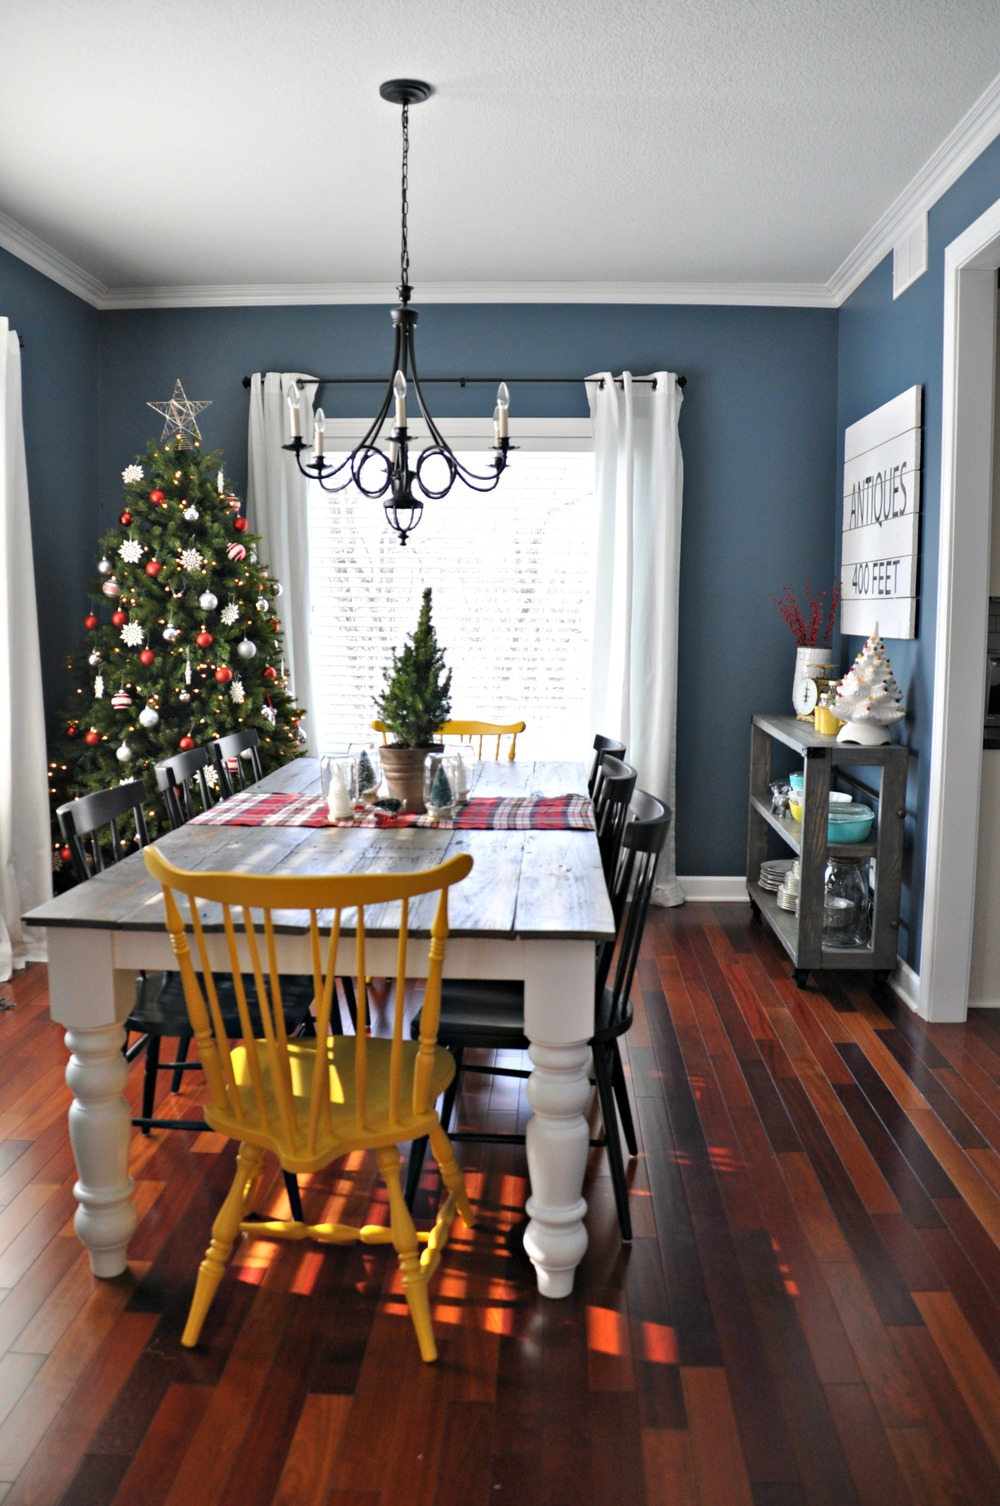 Holiday home tour dining kitchen decor and the dog for Ways to decorate dining room